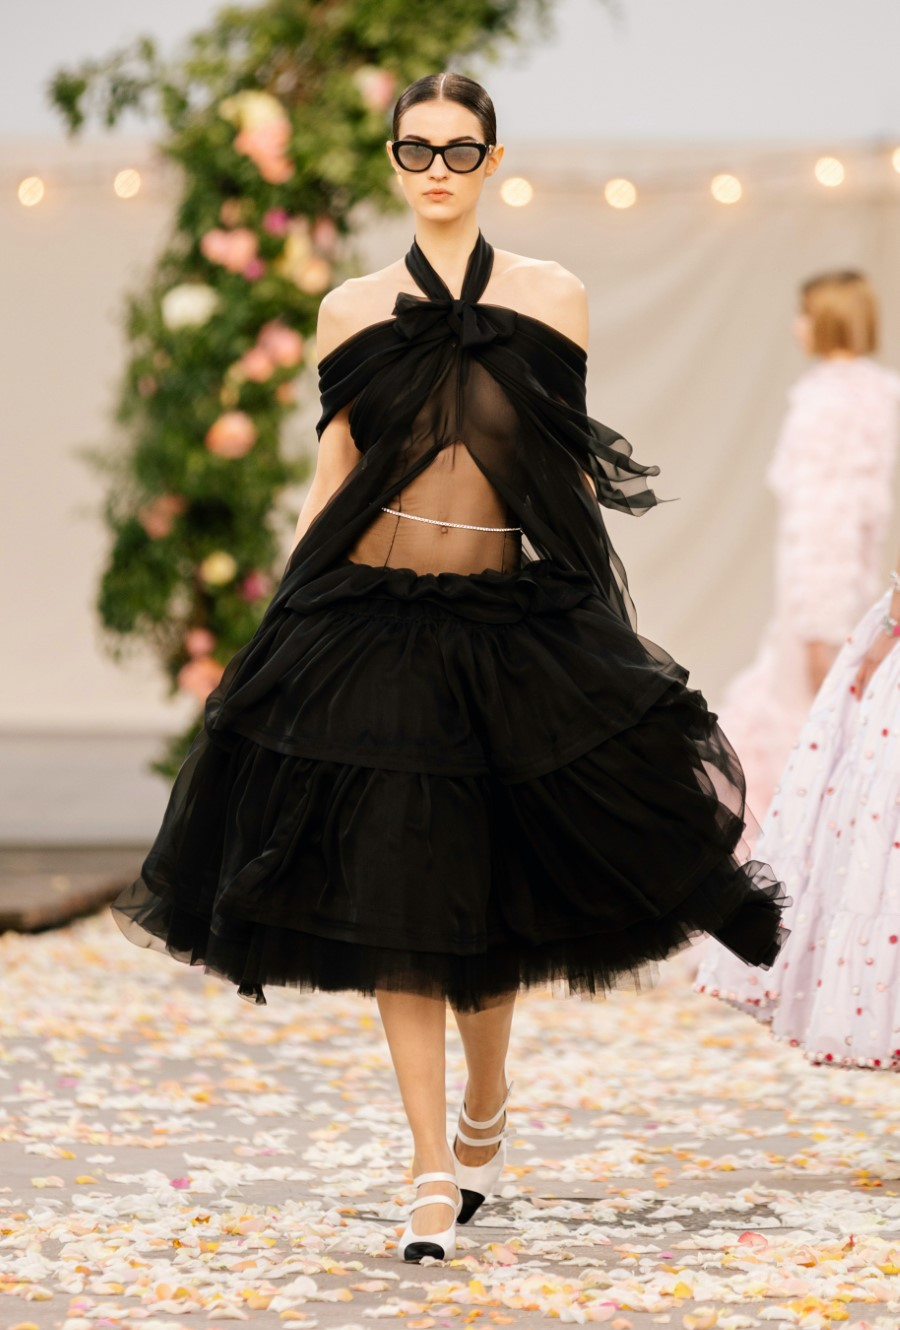 Chanel Haute Couture Spring Summer 2021